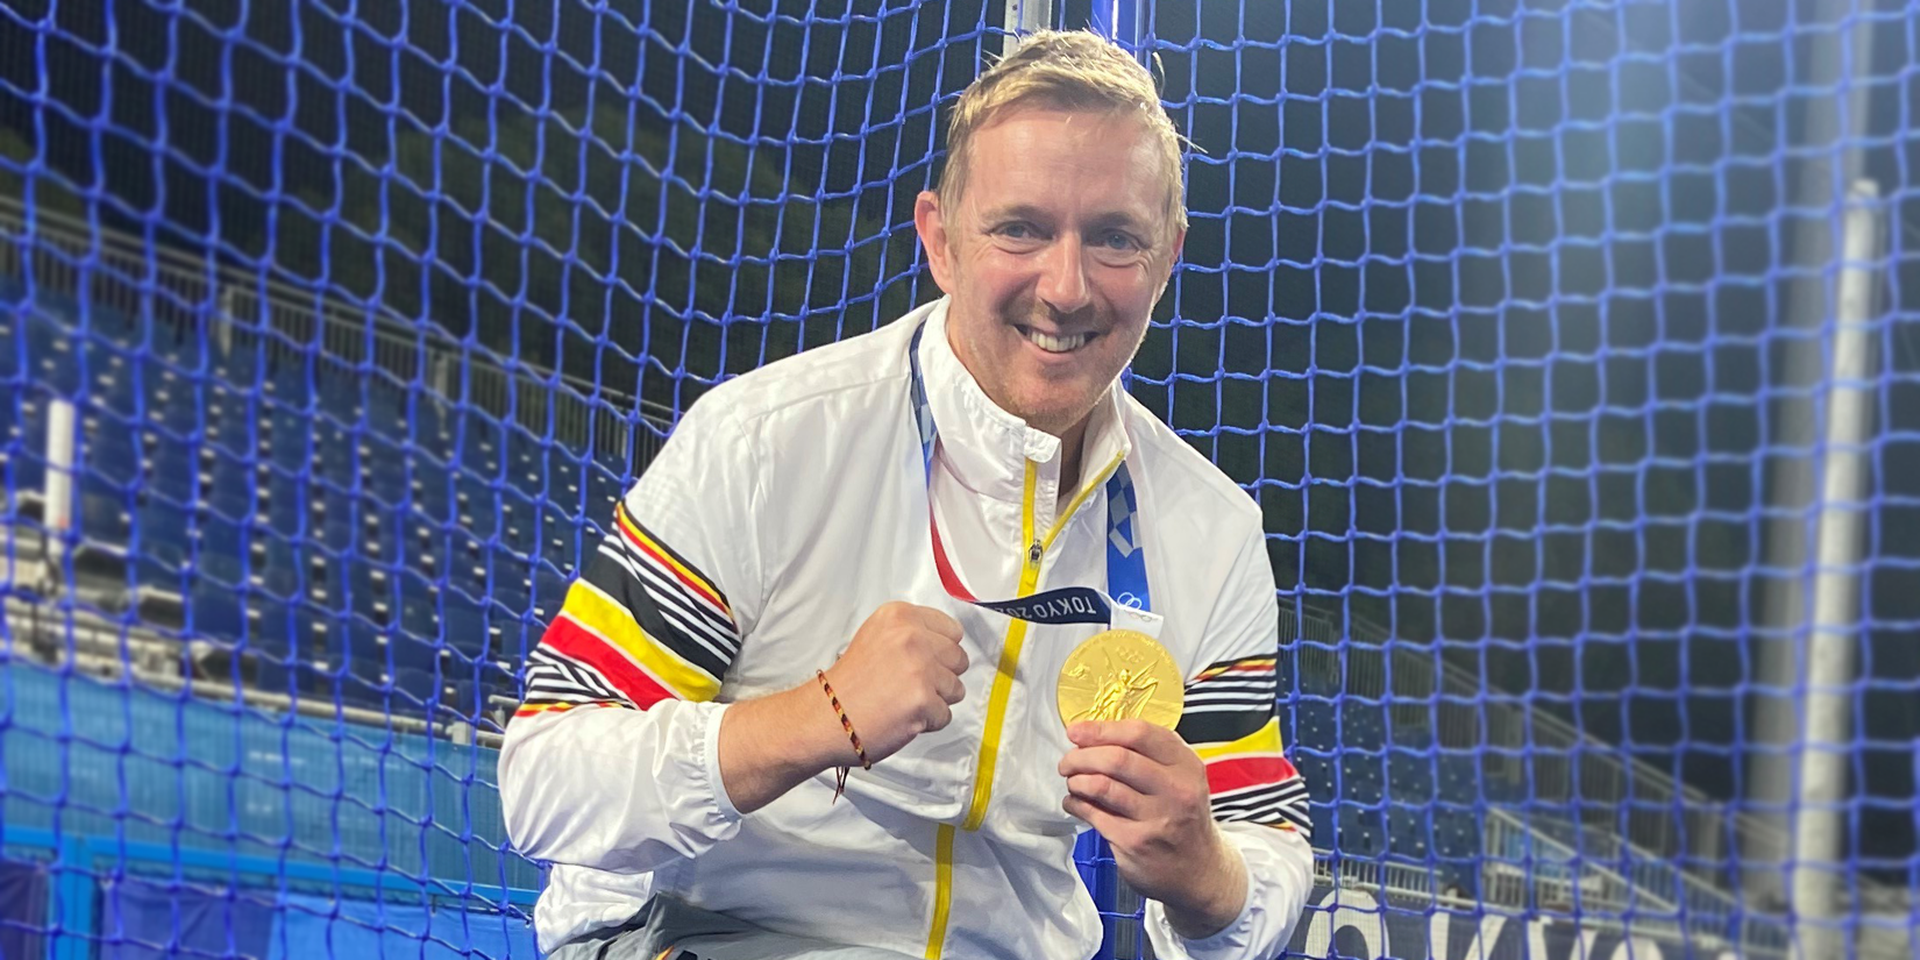 Steven Bayer with his gold medal